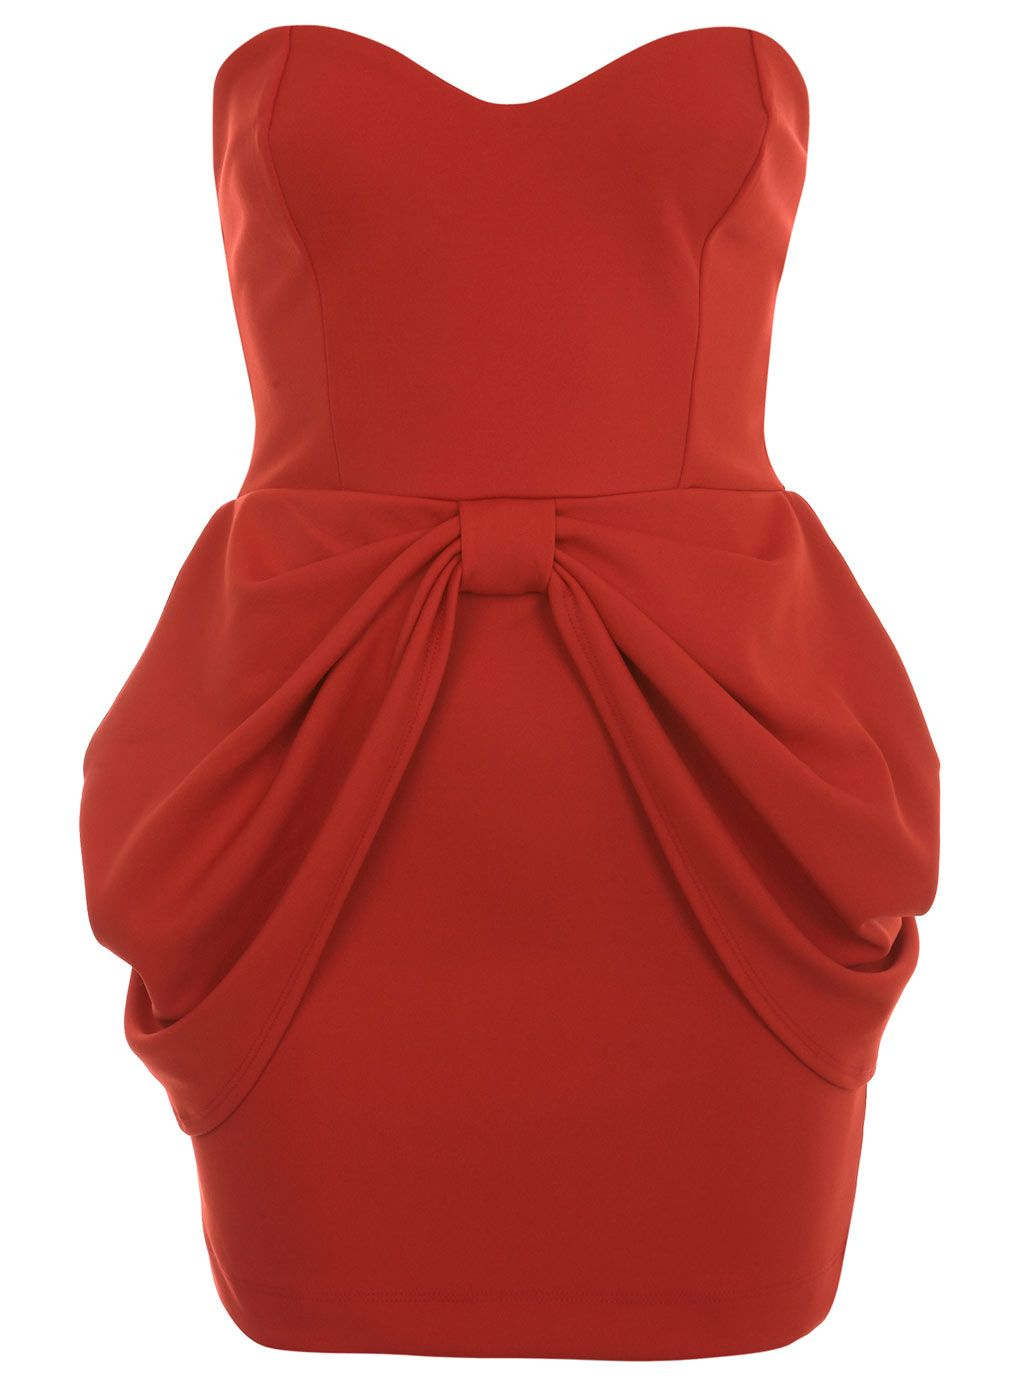 Red Bow Dress Red Bow Dress Cute Cocktail Dresses Dresses [ 1386 x 1020 Pixel ]